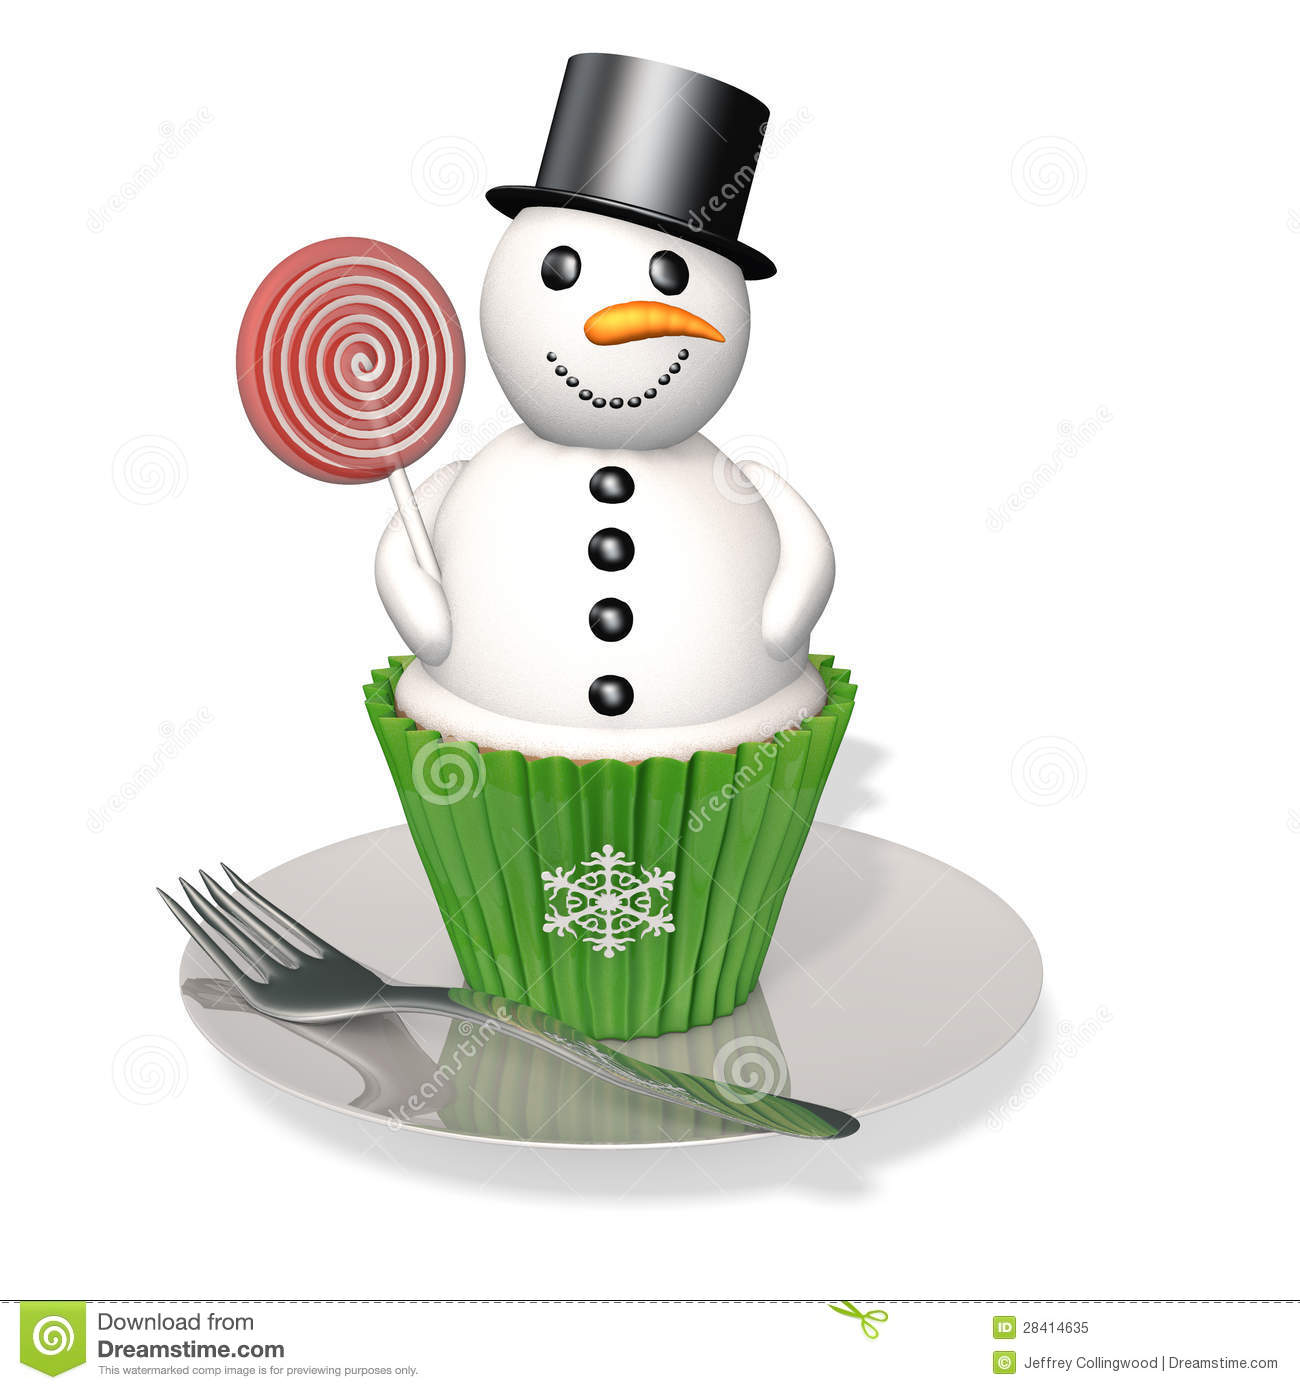 Snowman Cupcake: A snowman cupcake with licorice pieces and a candy ...